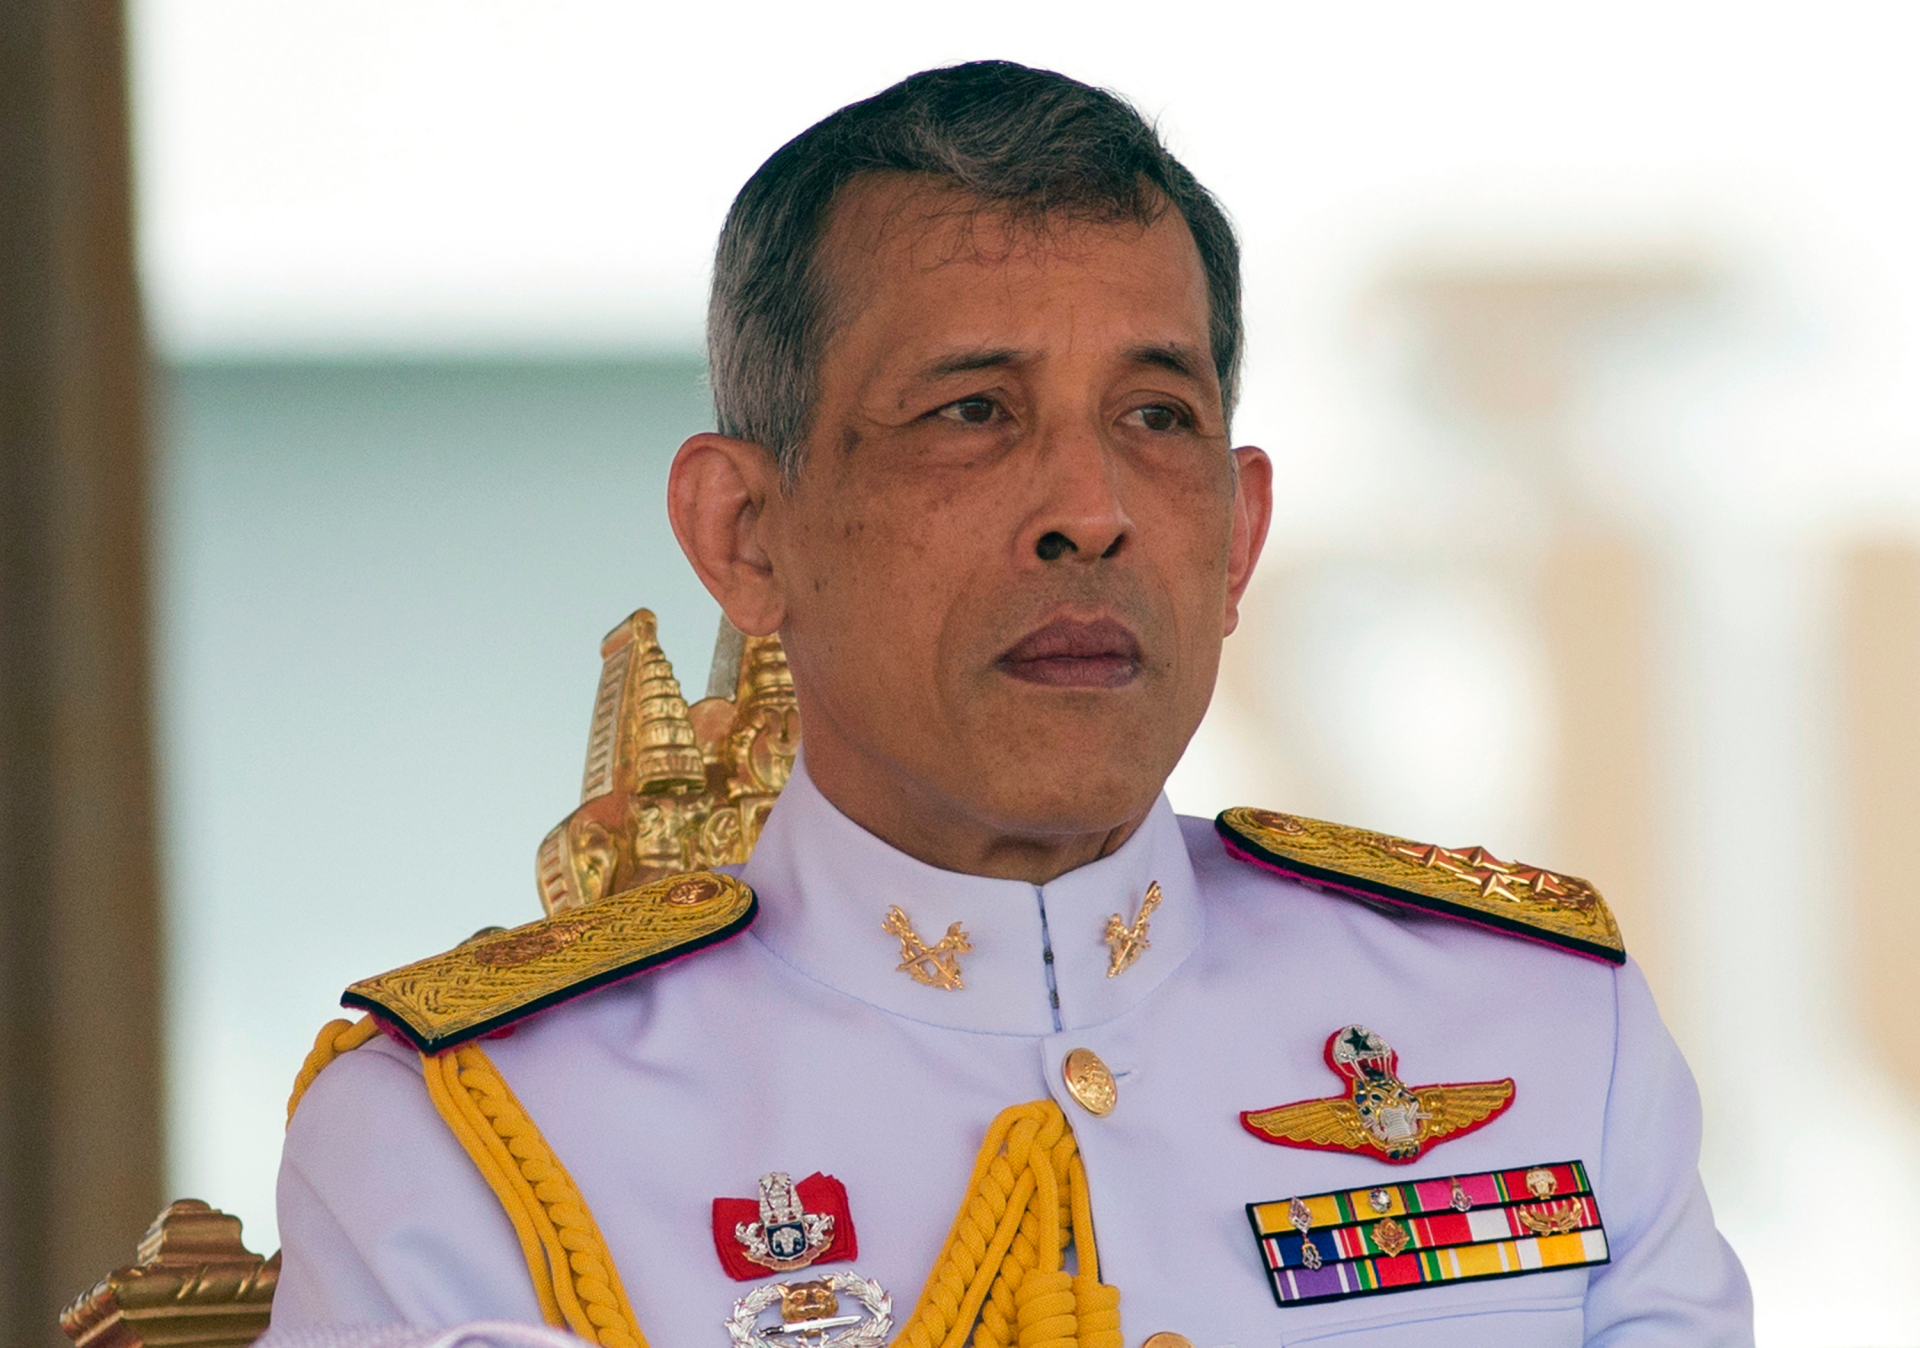 Thai king sacks 'evil' officials after stripping 'ungrateful' mistress of royal appointment, palace says